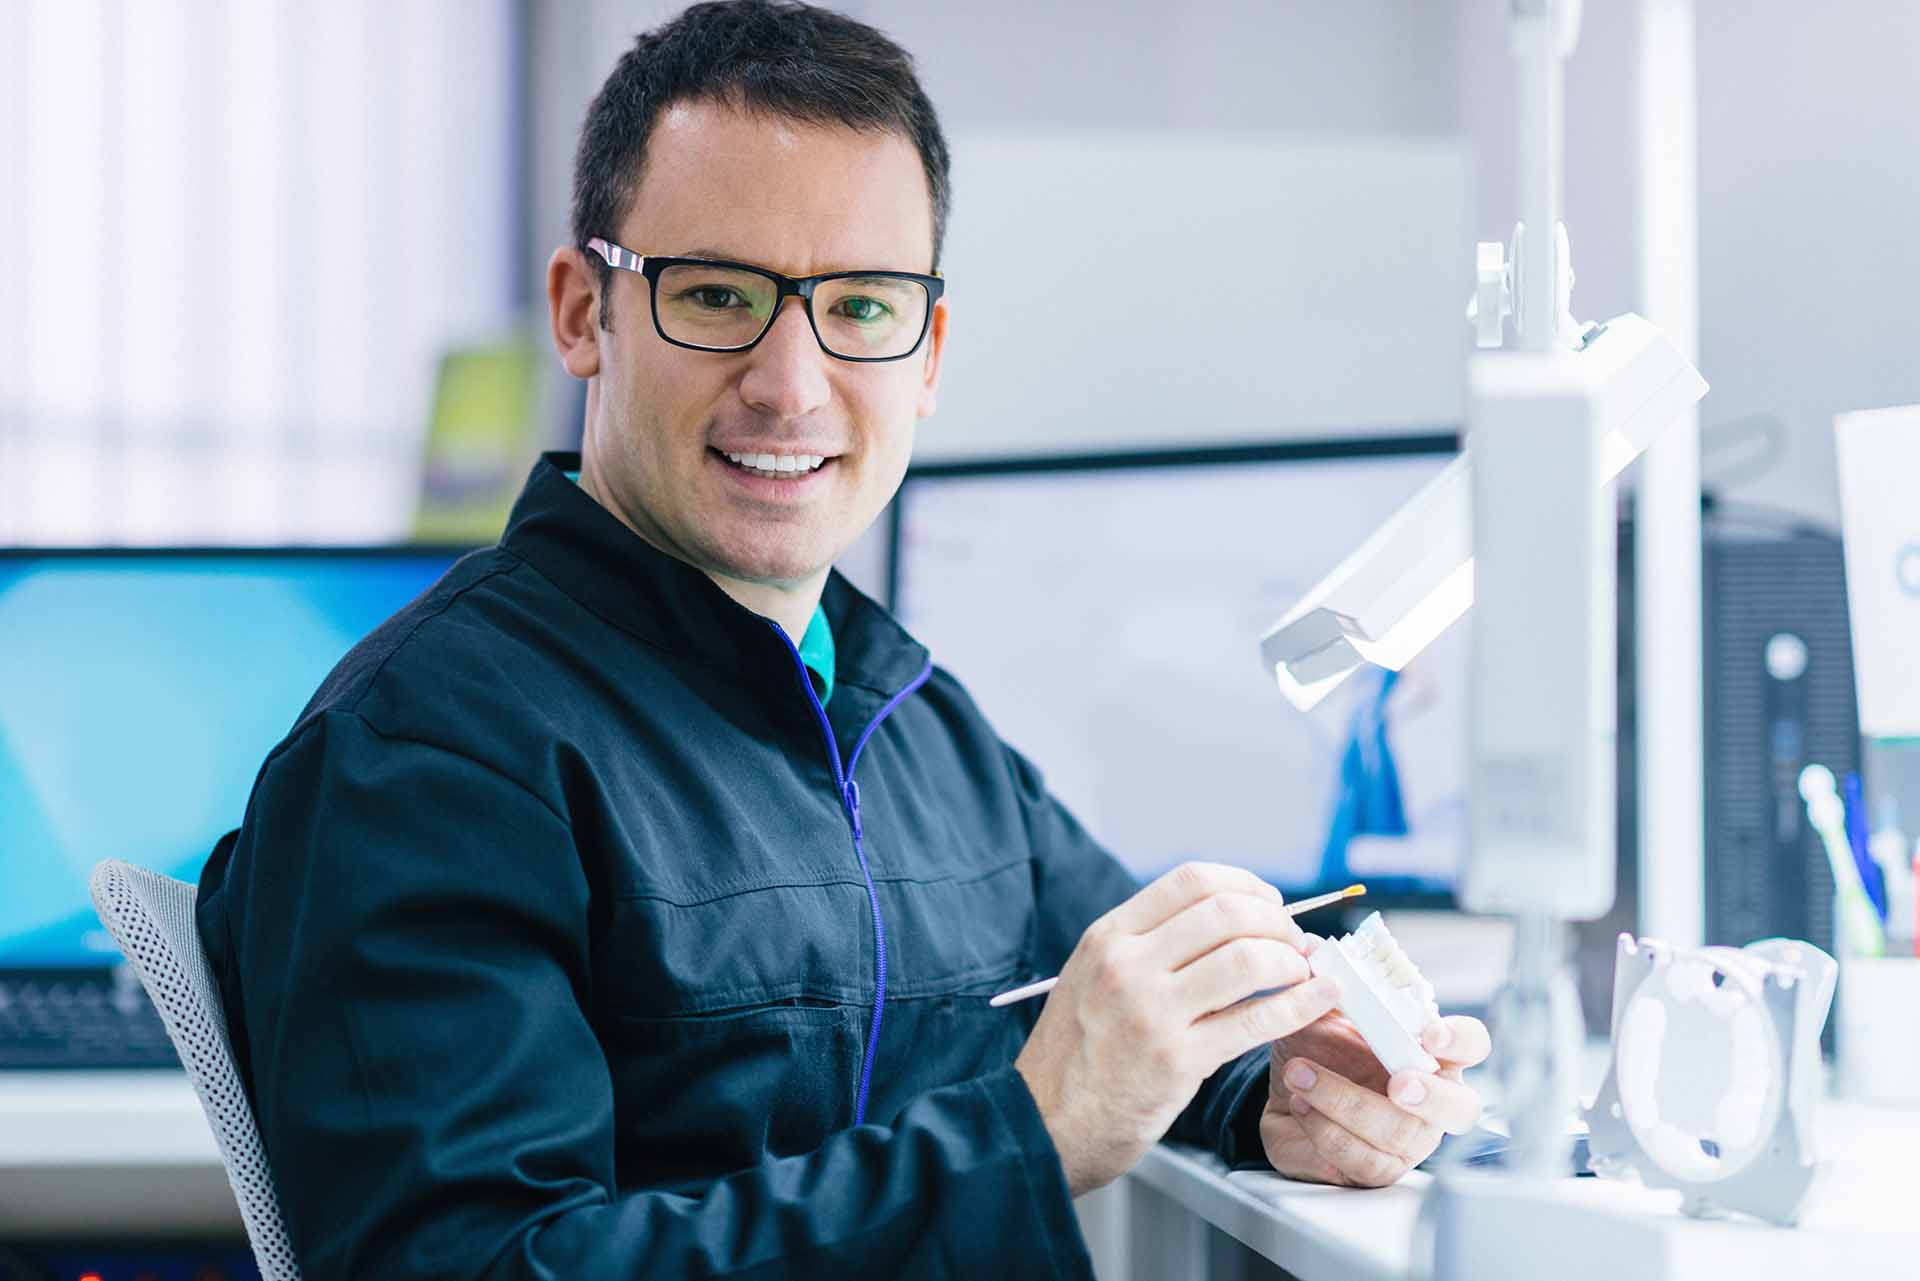 Restoring a smile with Whittier dental crowns.